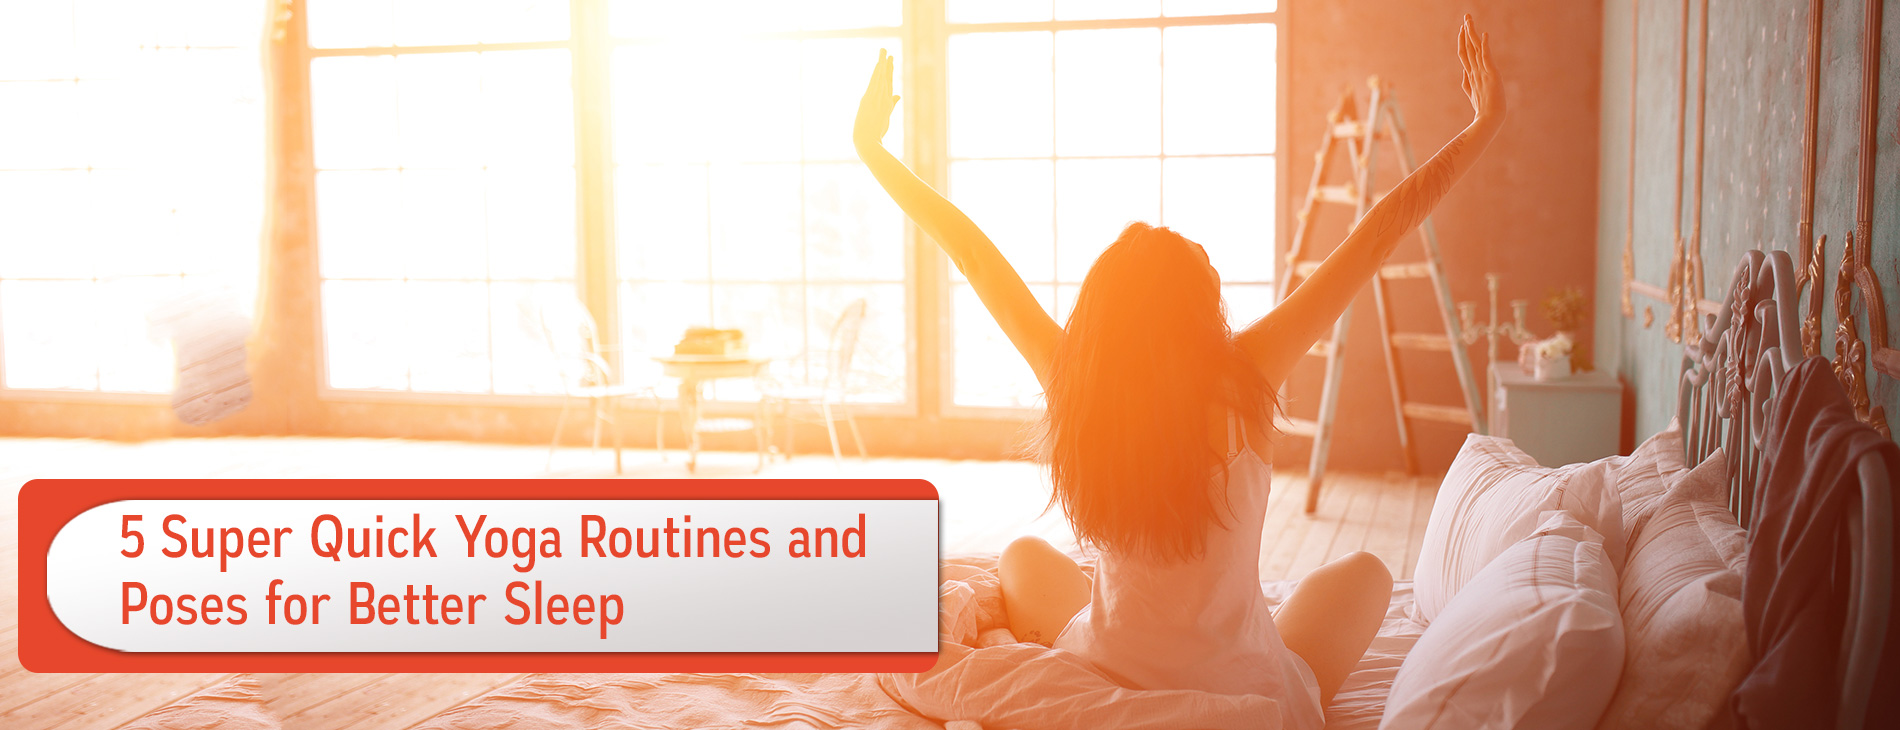 5-Super-Quick-Yoga-Routines-and-Poses-for-Better-Sleep